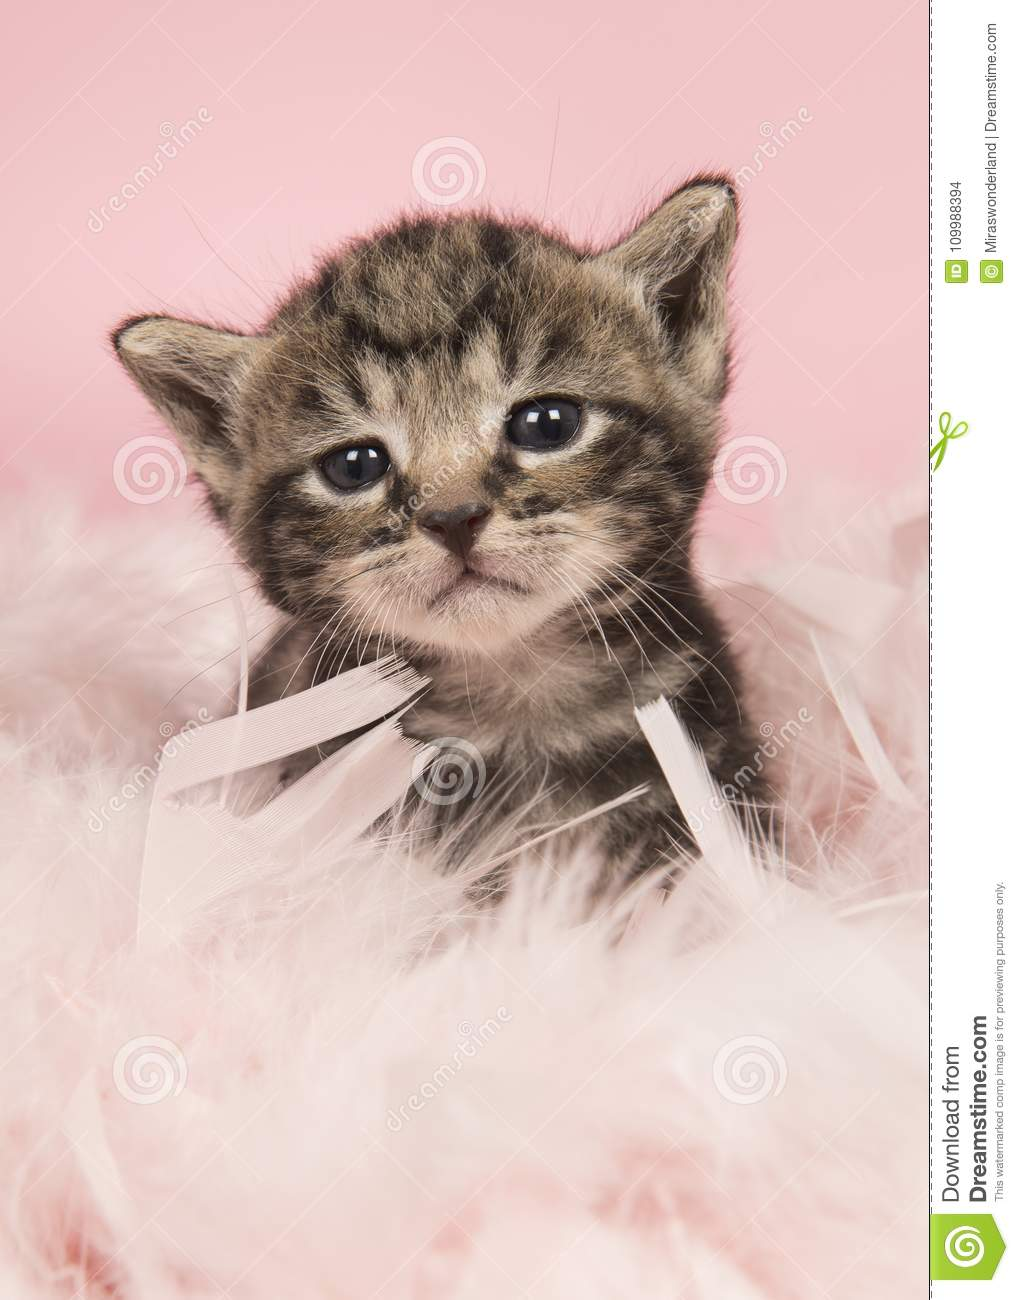 Cute five weeks old tabby baby cat in pink feathers on a pink ba